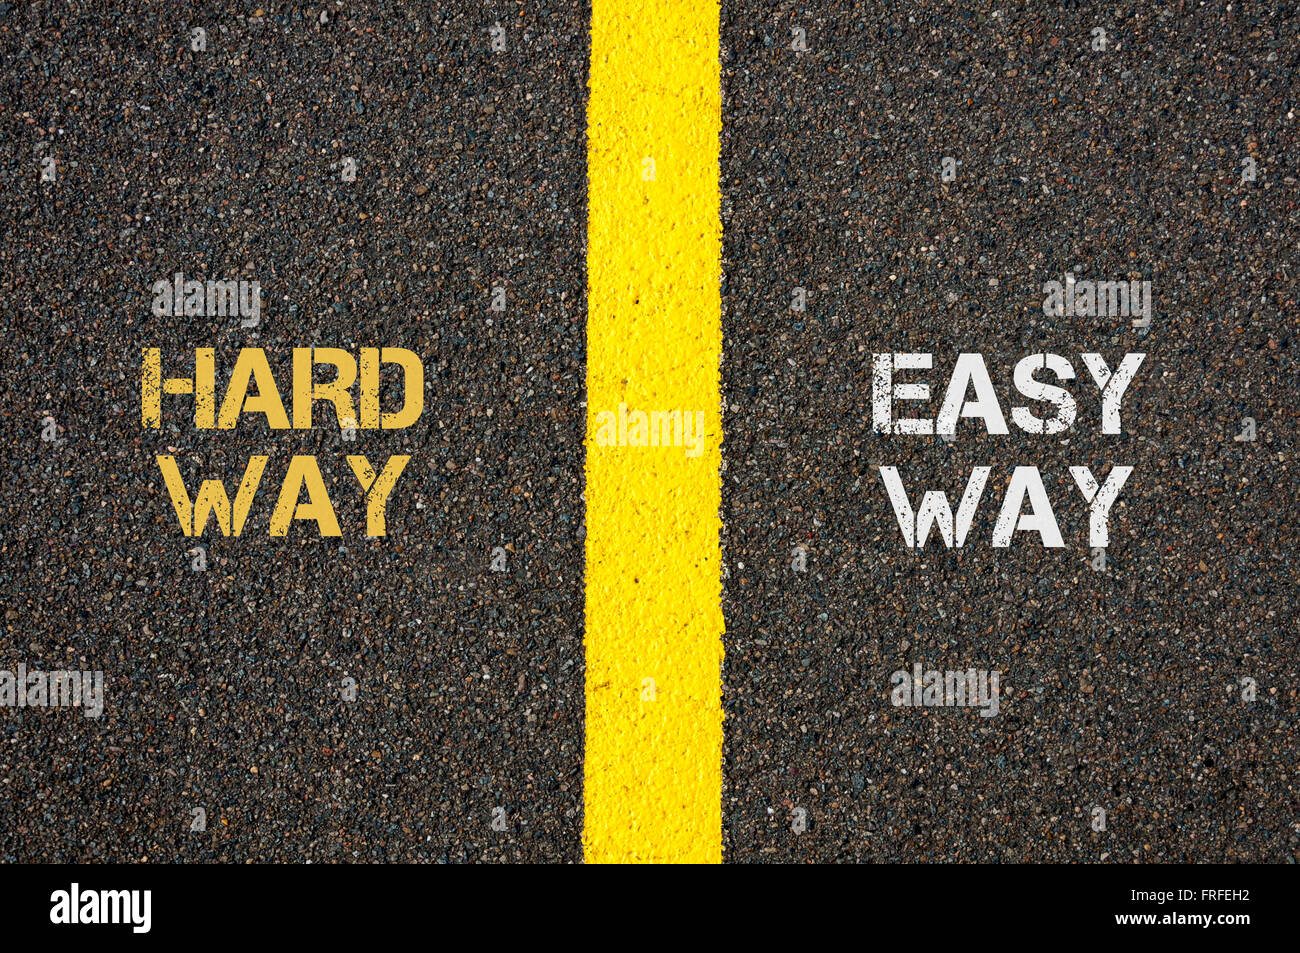 Antonym concept of HARD WAY versus EASY WAY written over tarmac, road marking yellow paint separating line between - Stock Image